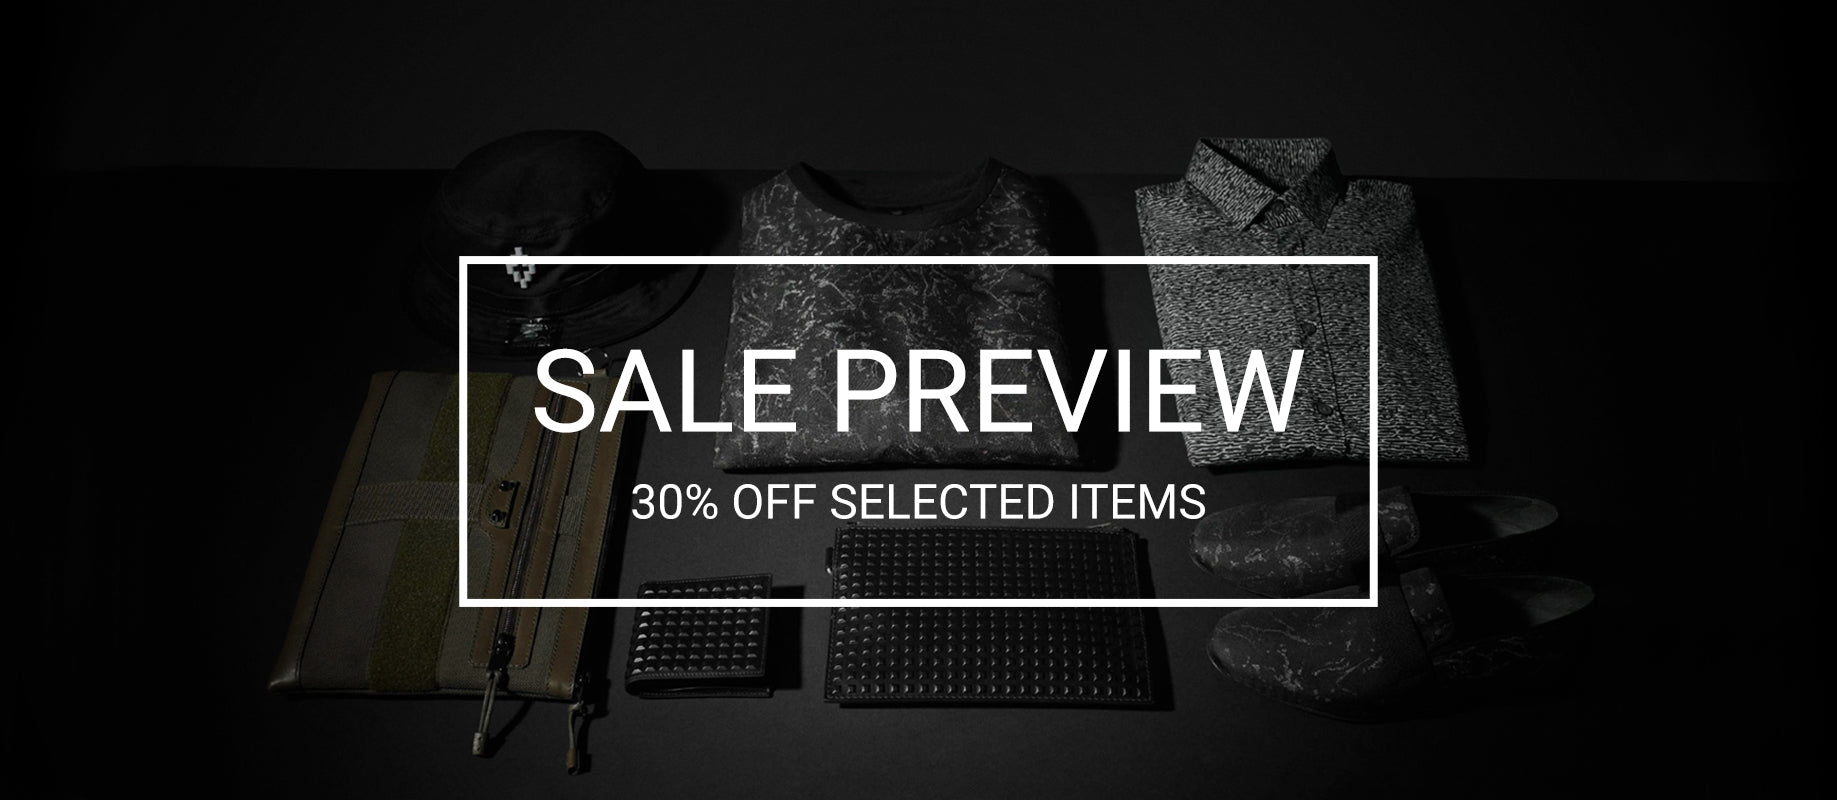 Sale Preview - 30% off selected items